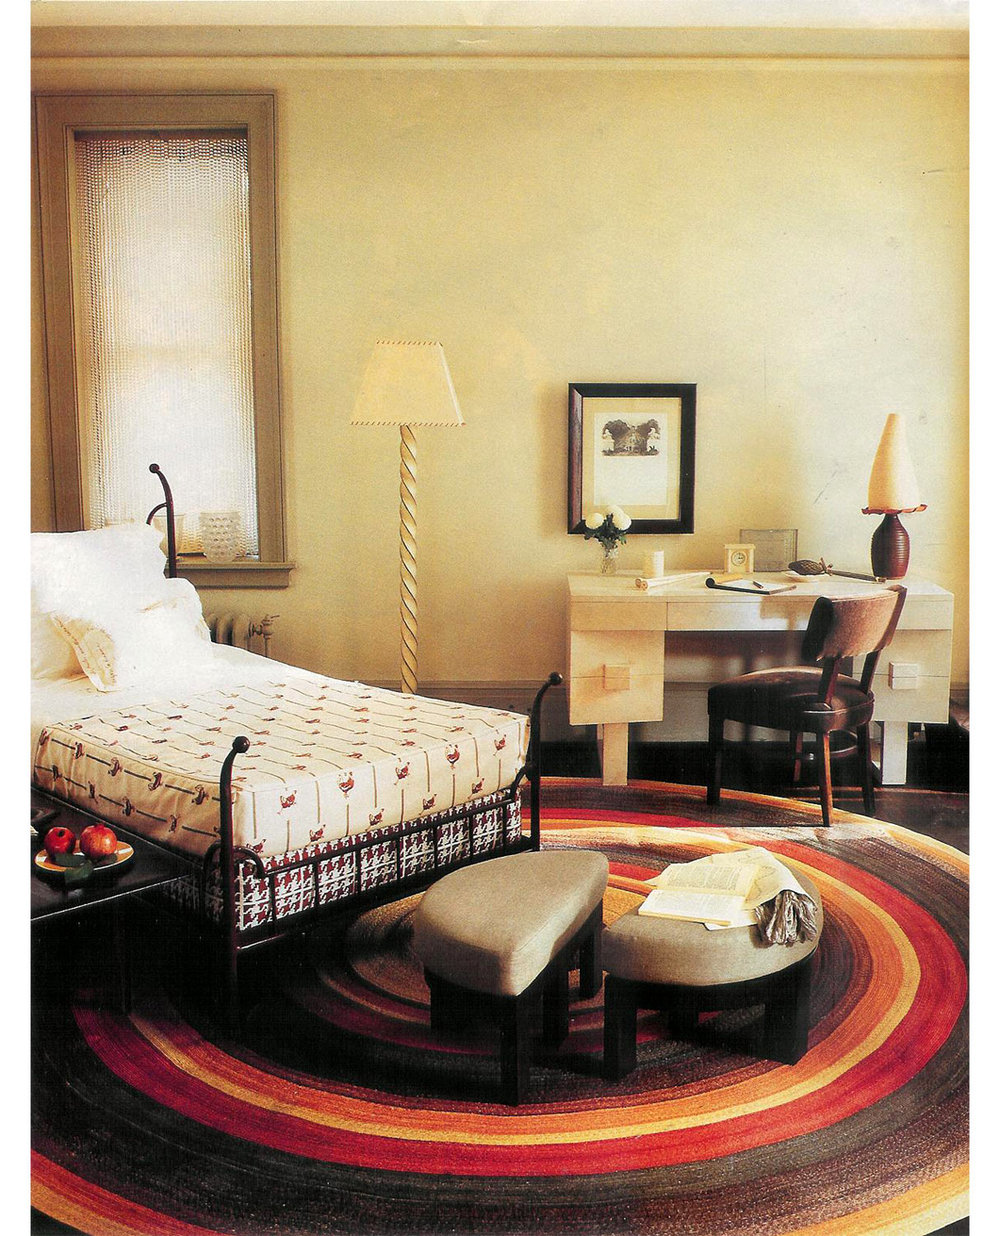 housebeautiful1996-p2_alemanmoore.jpg